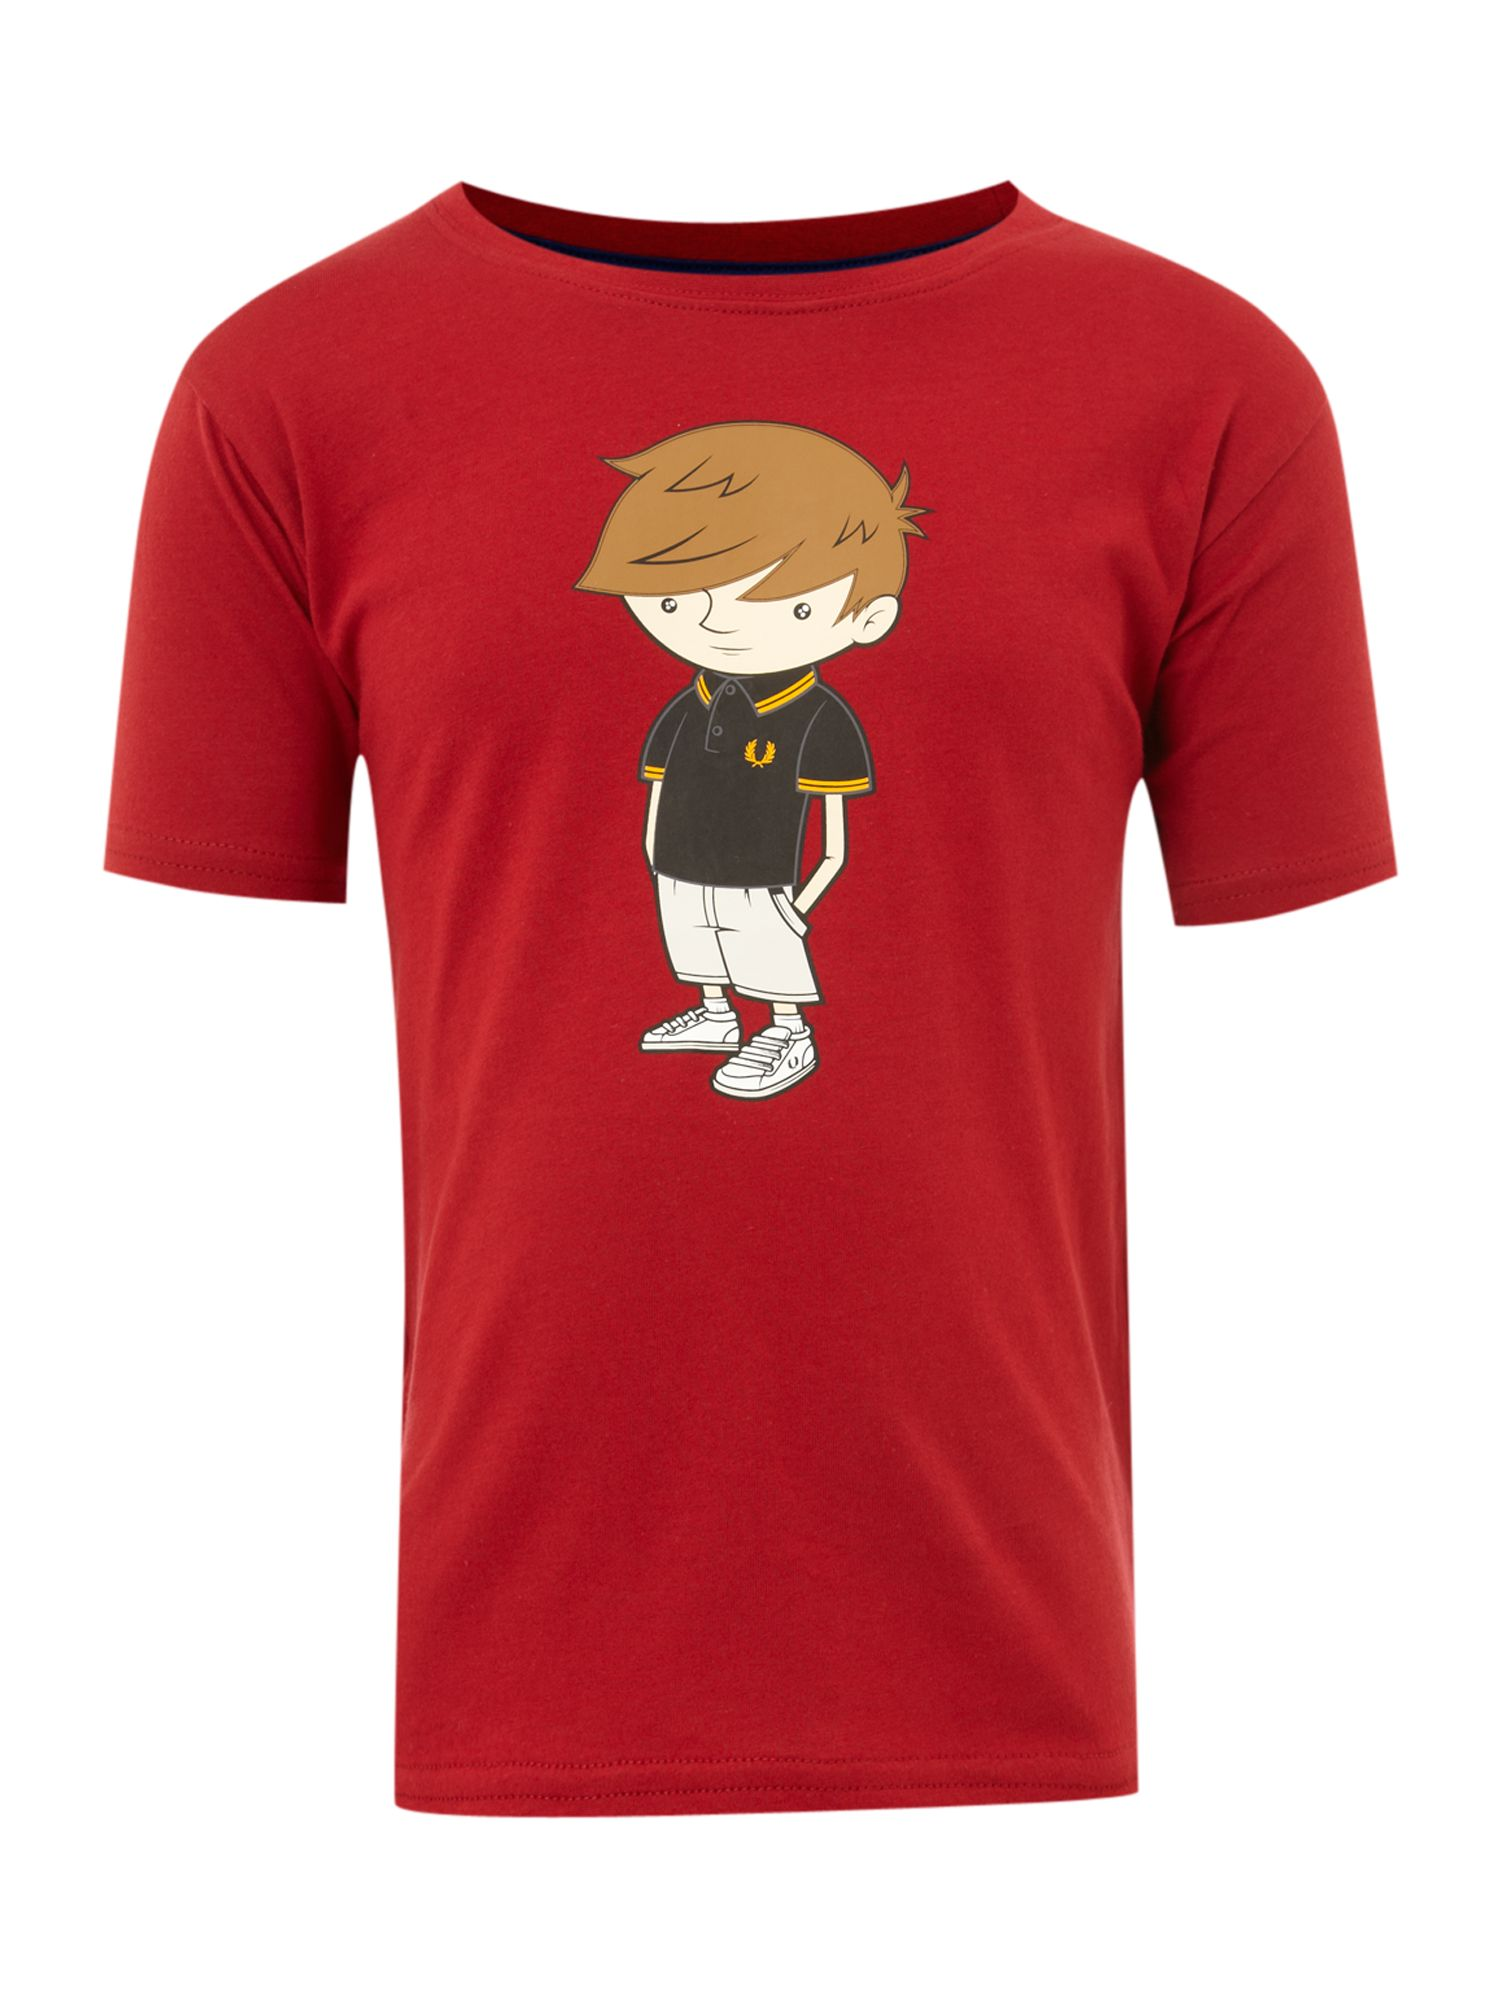 Fred Perry Short-sleeved graphic t-shirt, Red product image